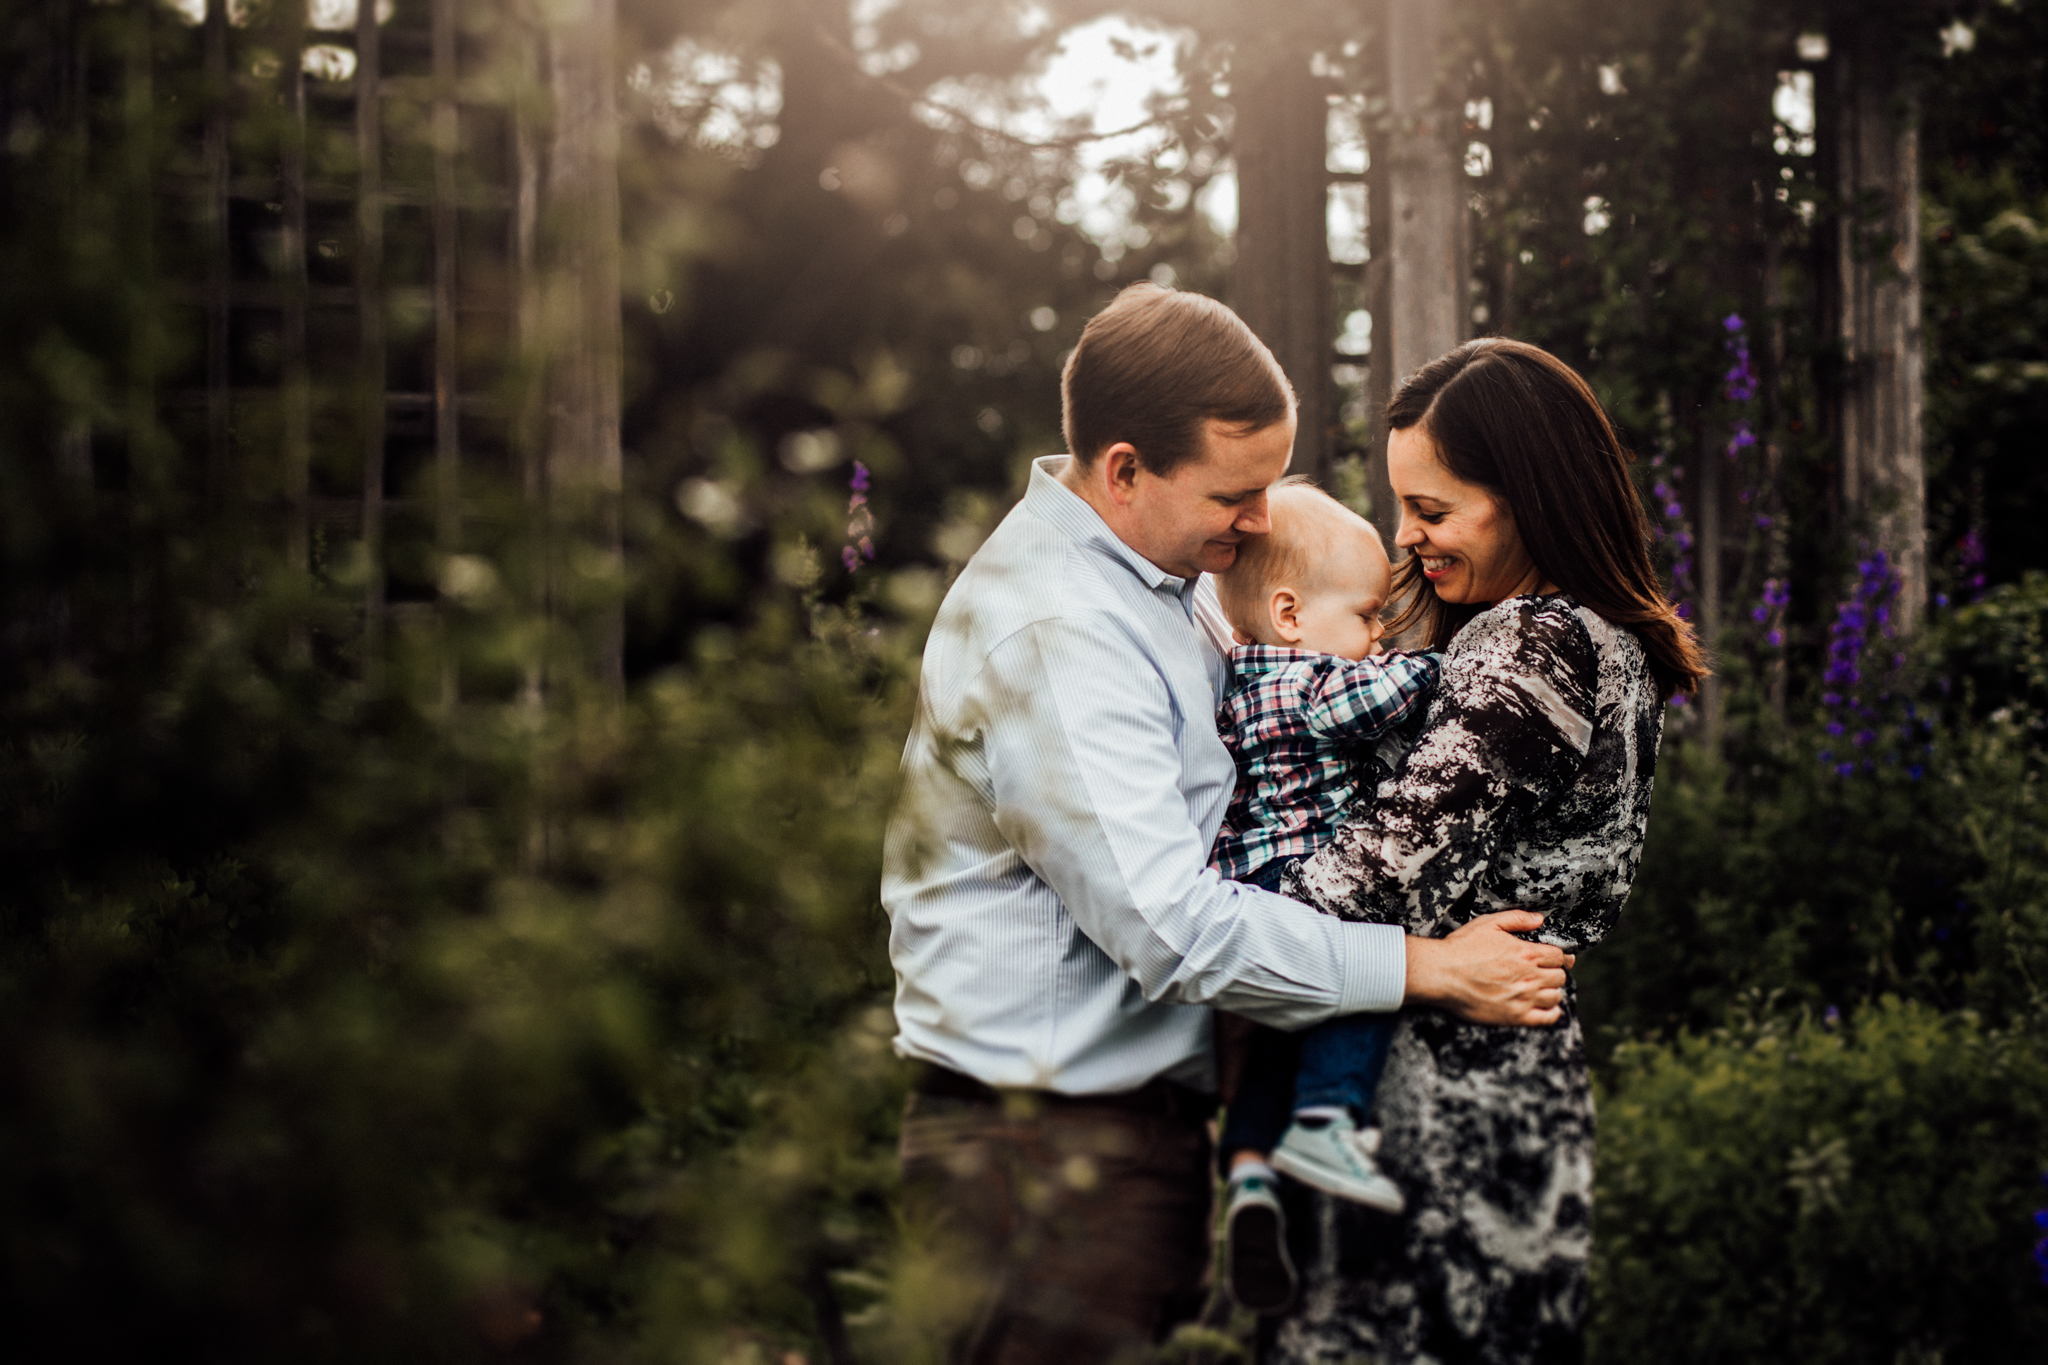 Family snuggles in garden by Madison and Huntsville Alabama family photographer Rachel K Photo